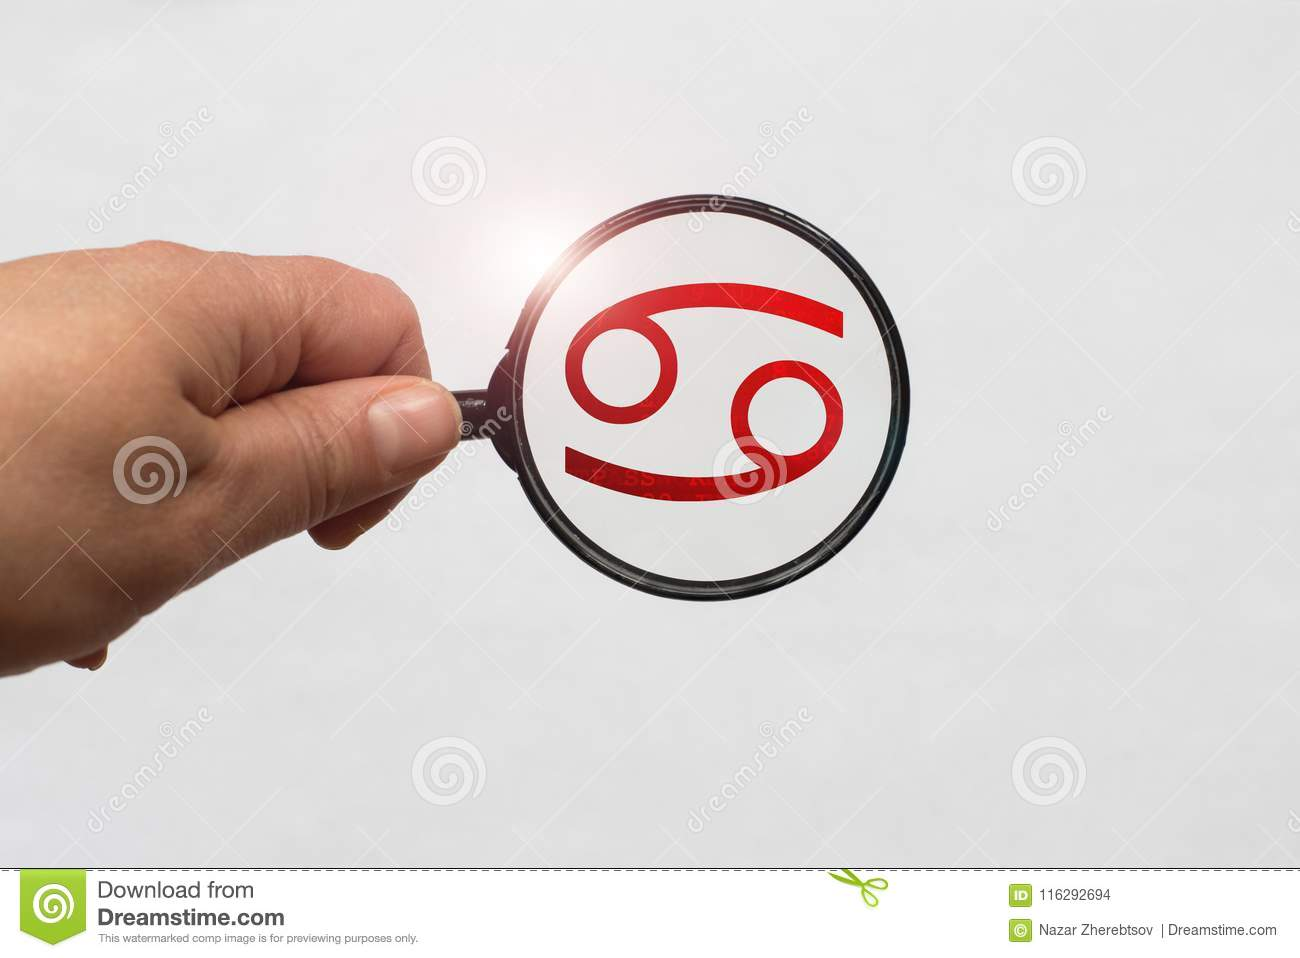 Illustration of a magnifying glass focusing on the Red Cancer Zodiac Sign